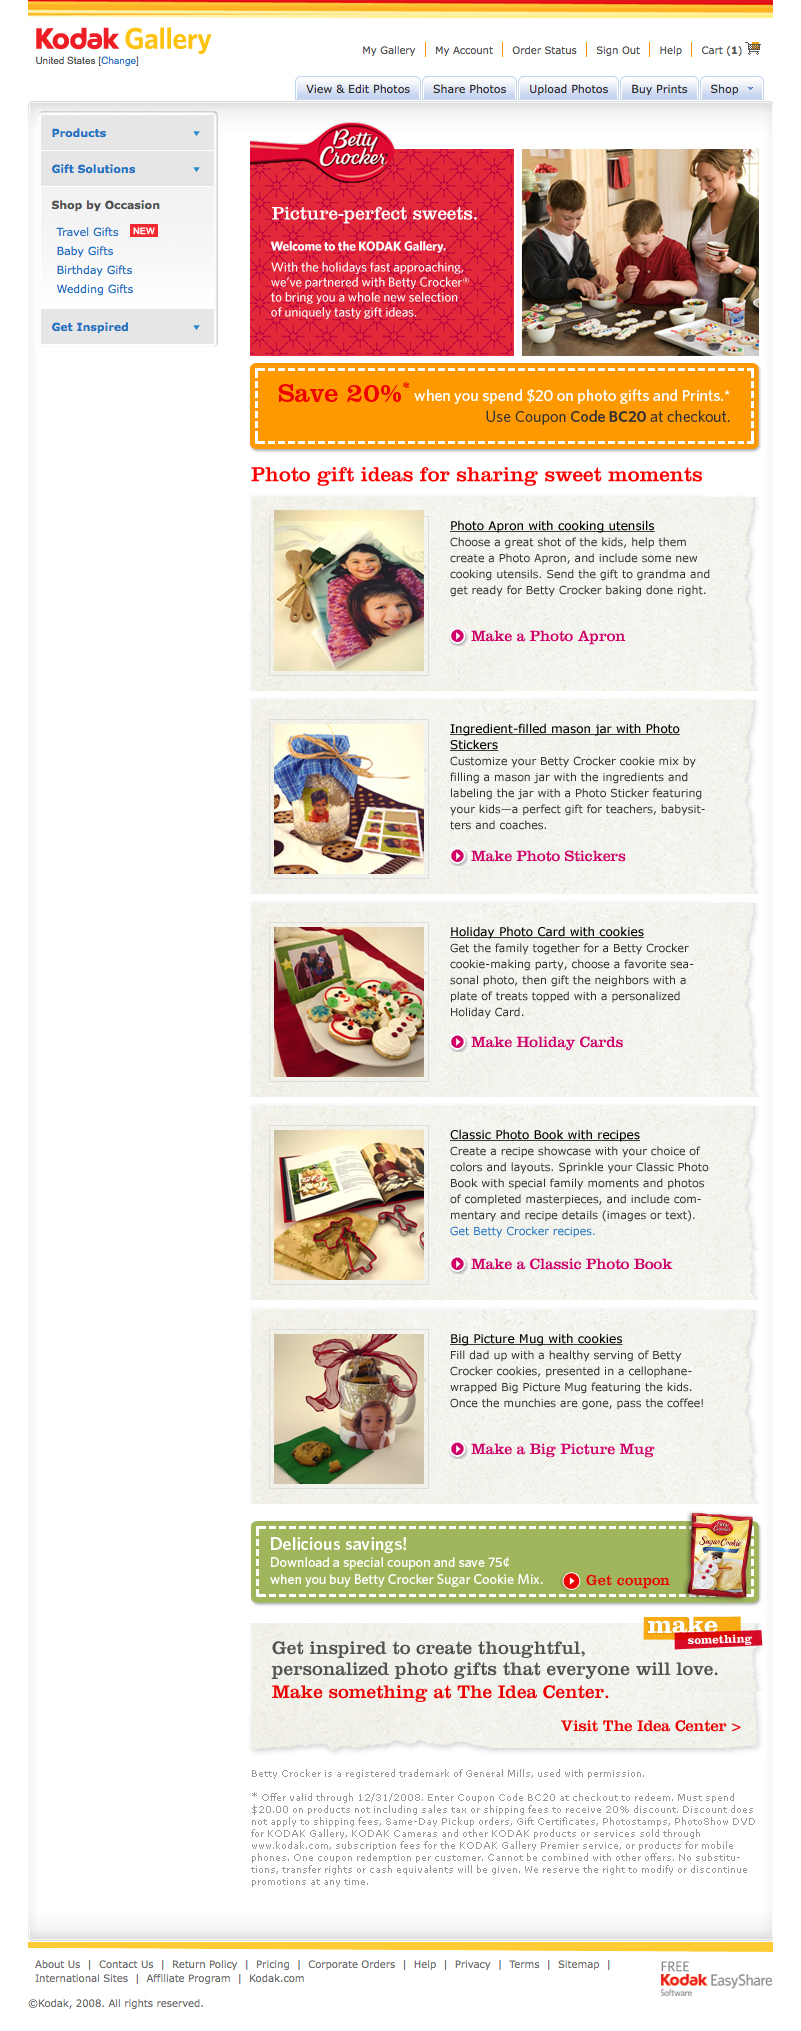 Betty Crocker Co-Branded Landing Page for Kodak Gallery